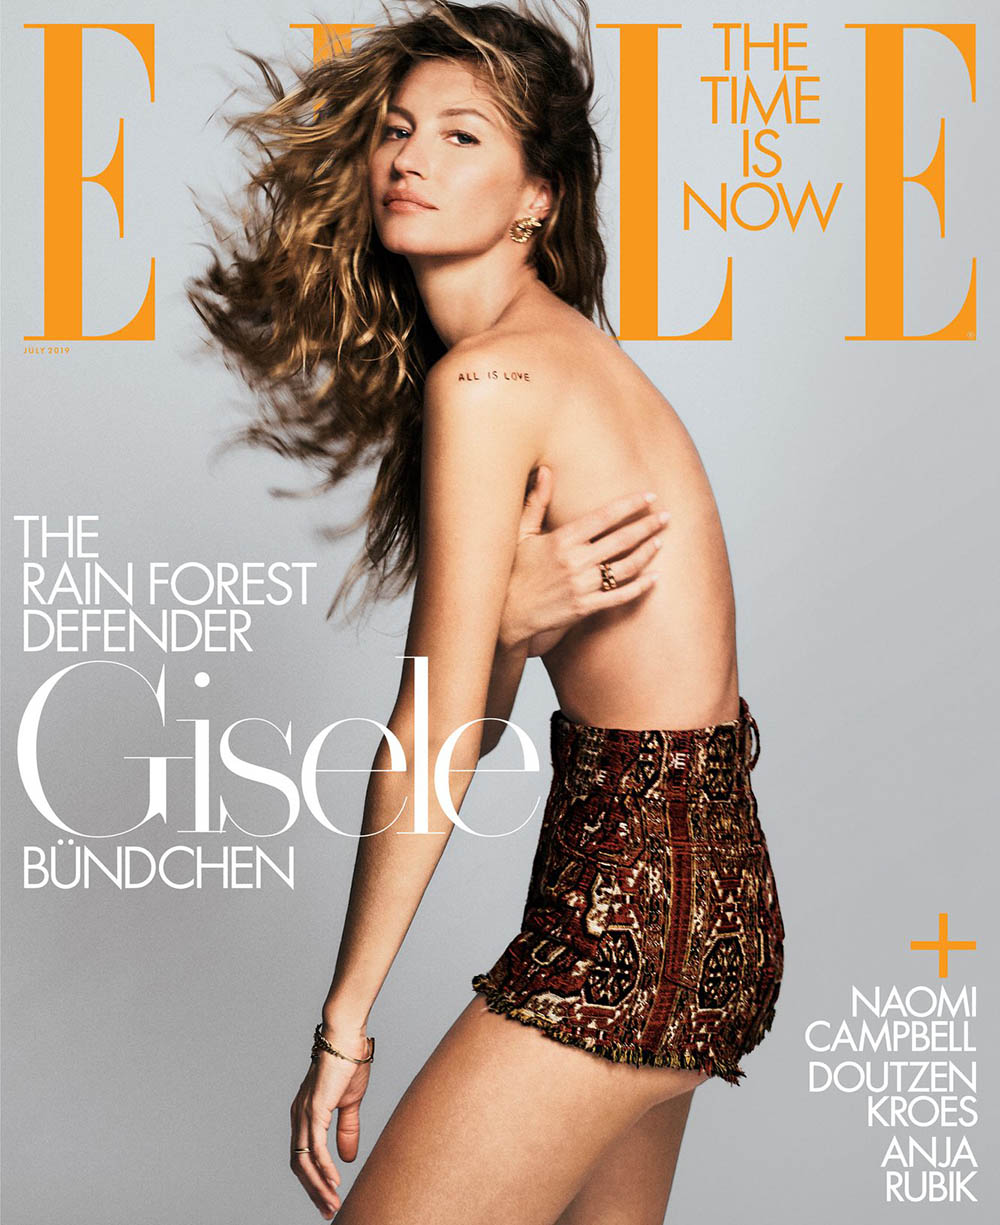 Gisele Bündchen, Naomi Campbell, Anja Rubik and Doutzen Kroes cover Elle US July 2019 by Chris Colls